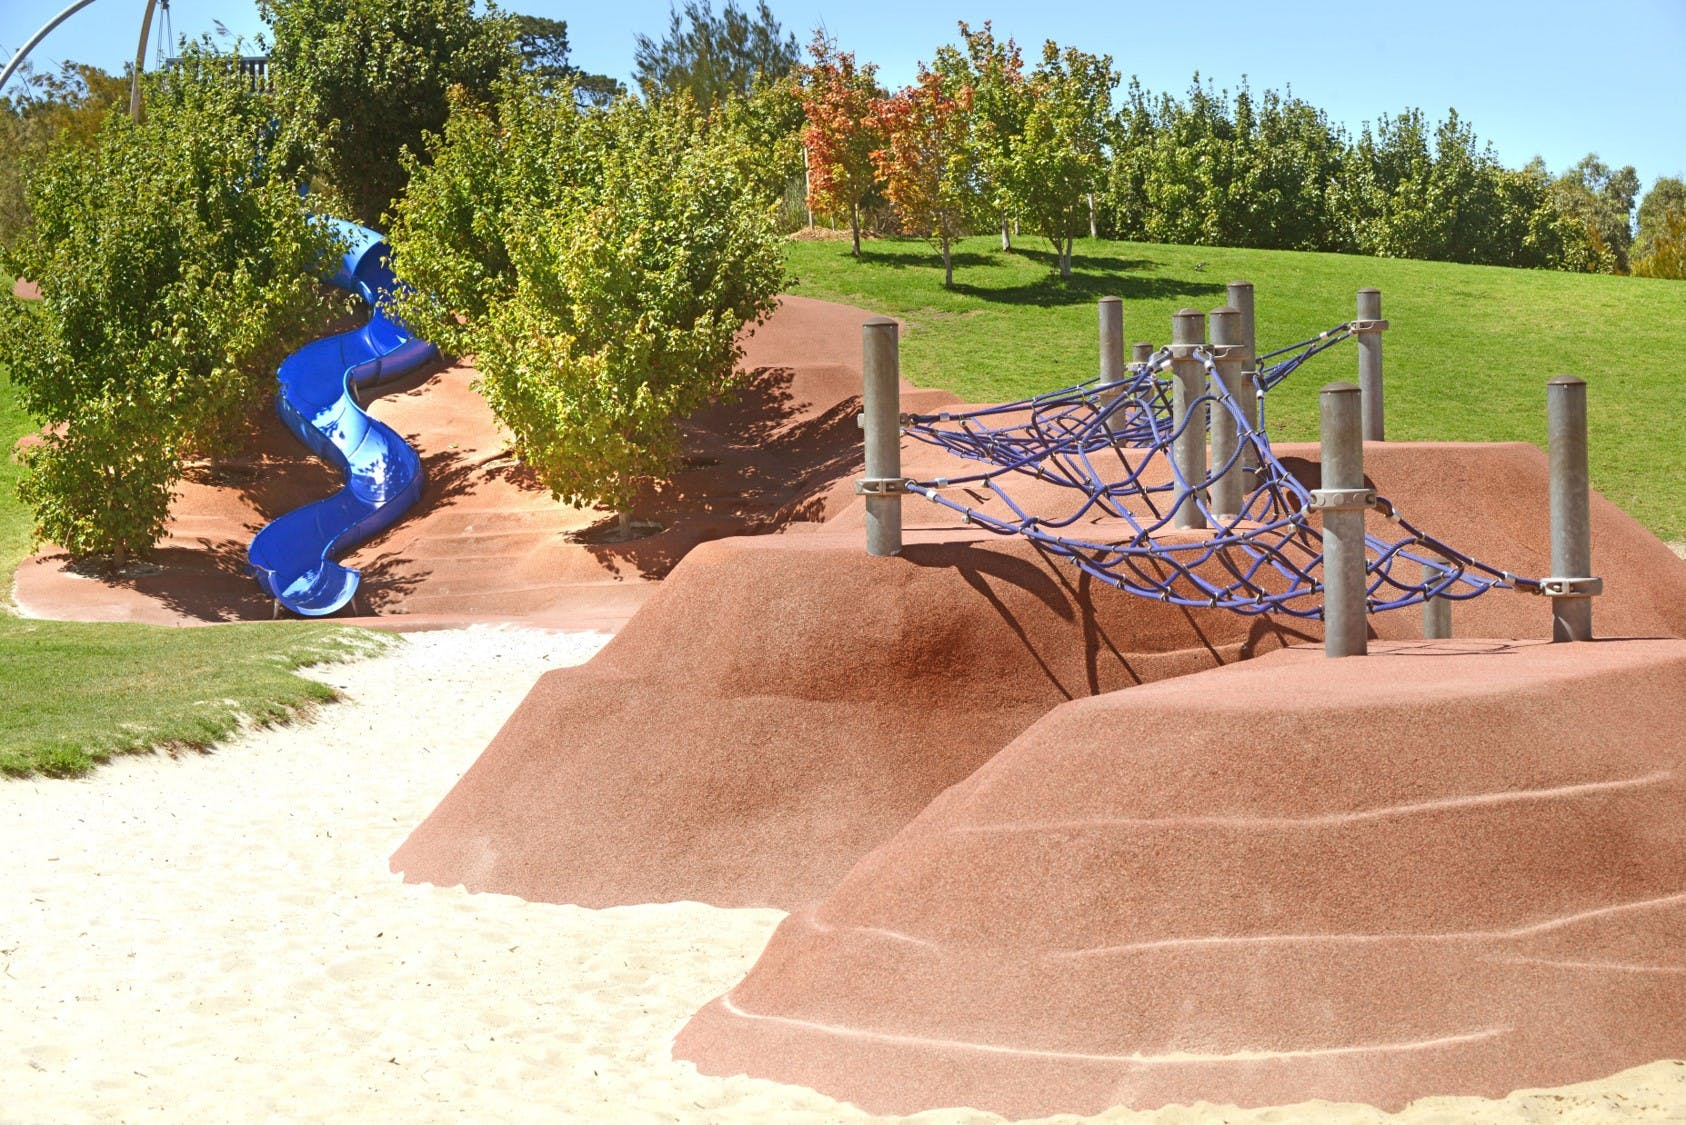 In Action: Regional Playspace Slide, Nets and Hill